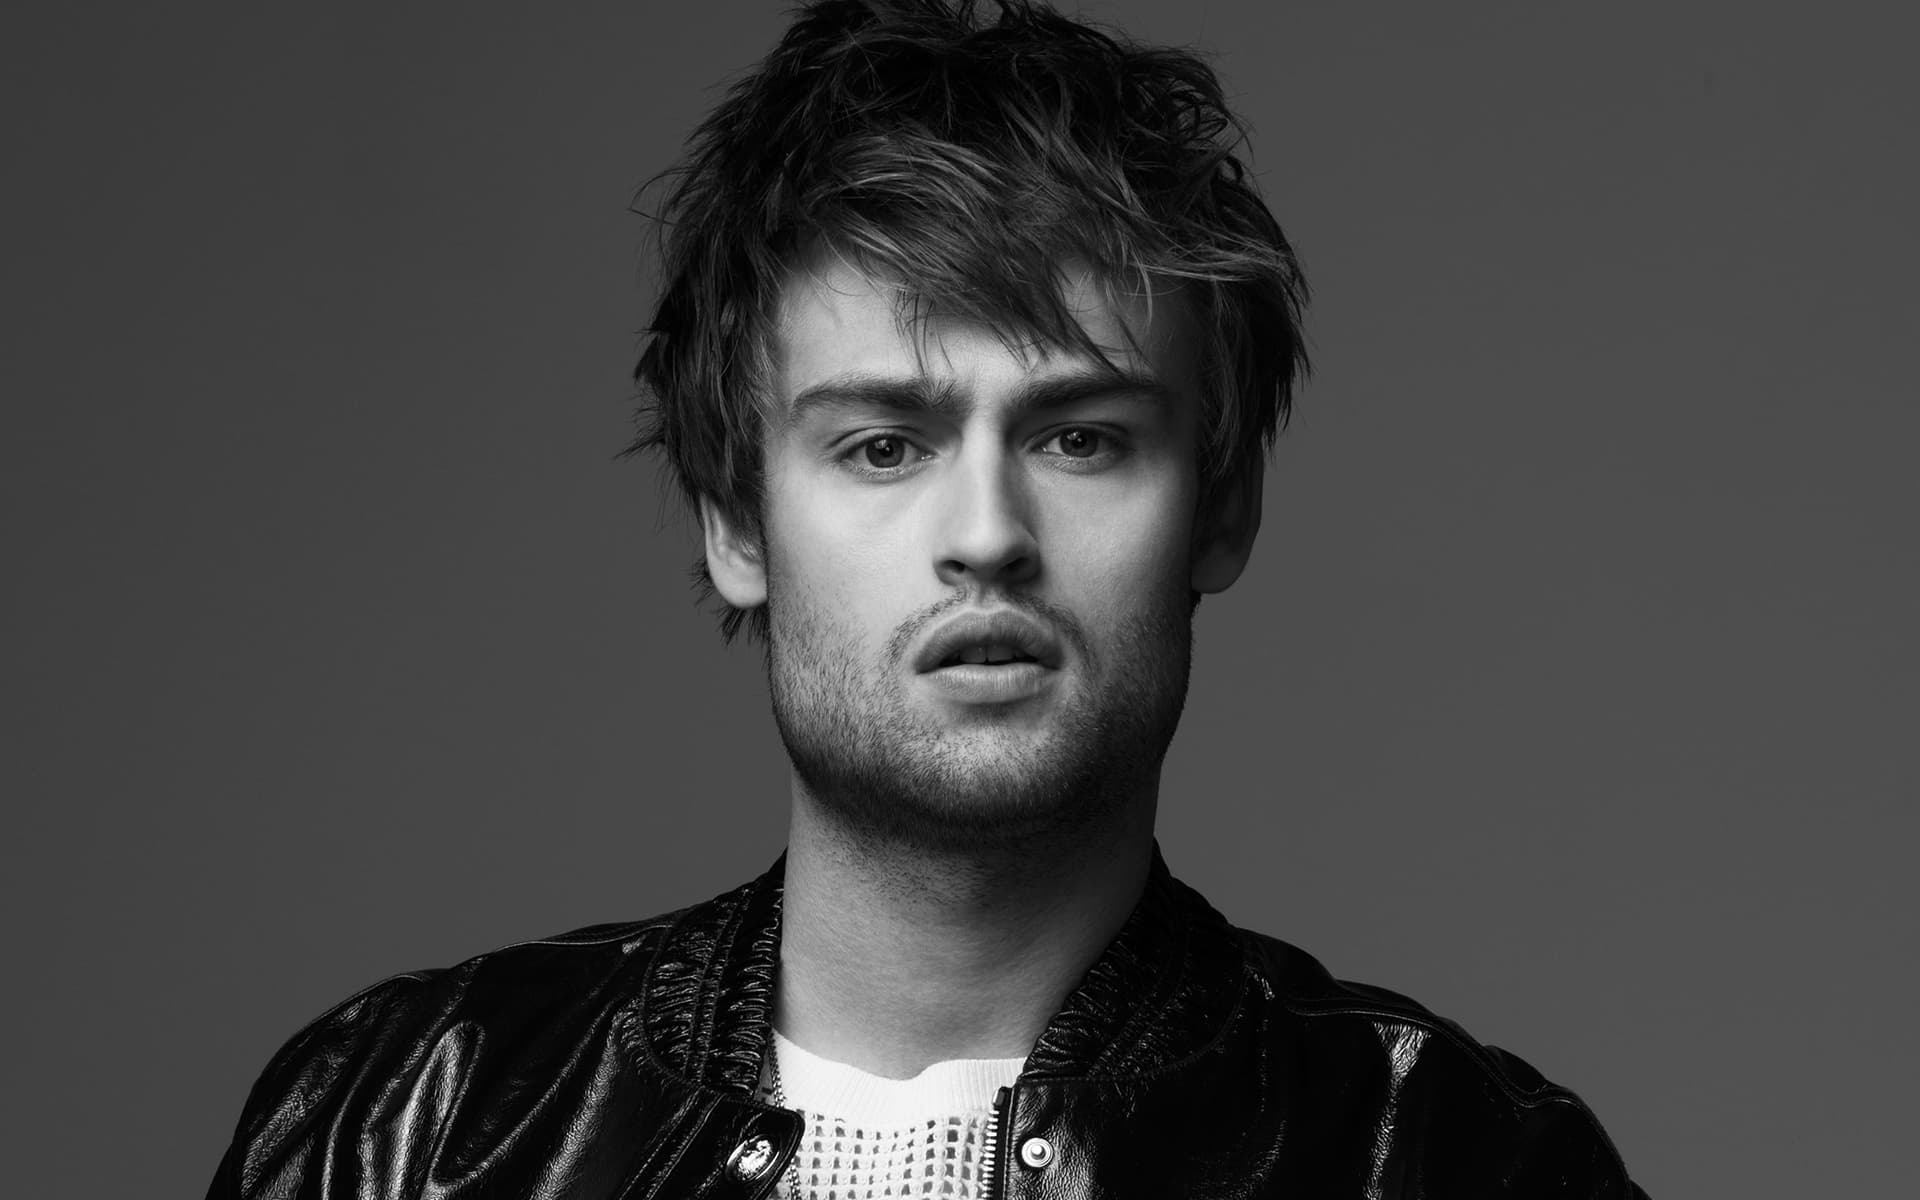 1920x1200 - Douglas Booth Wallpapers 23